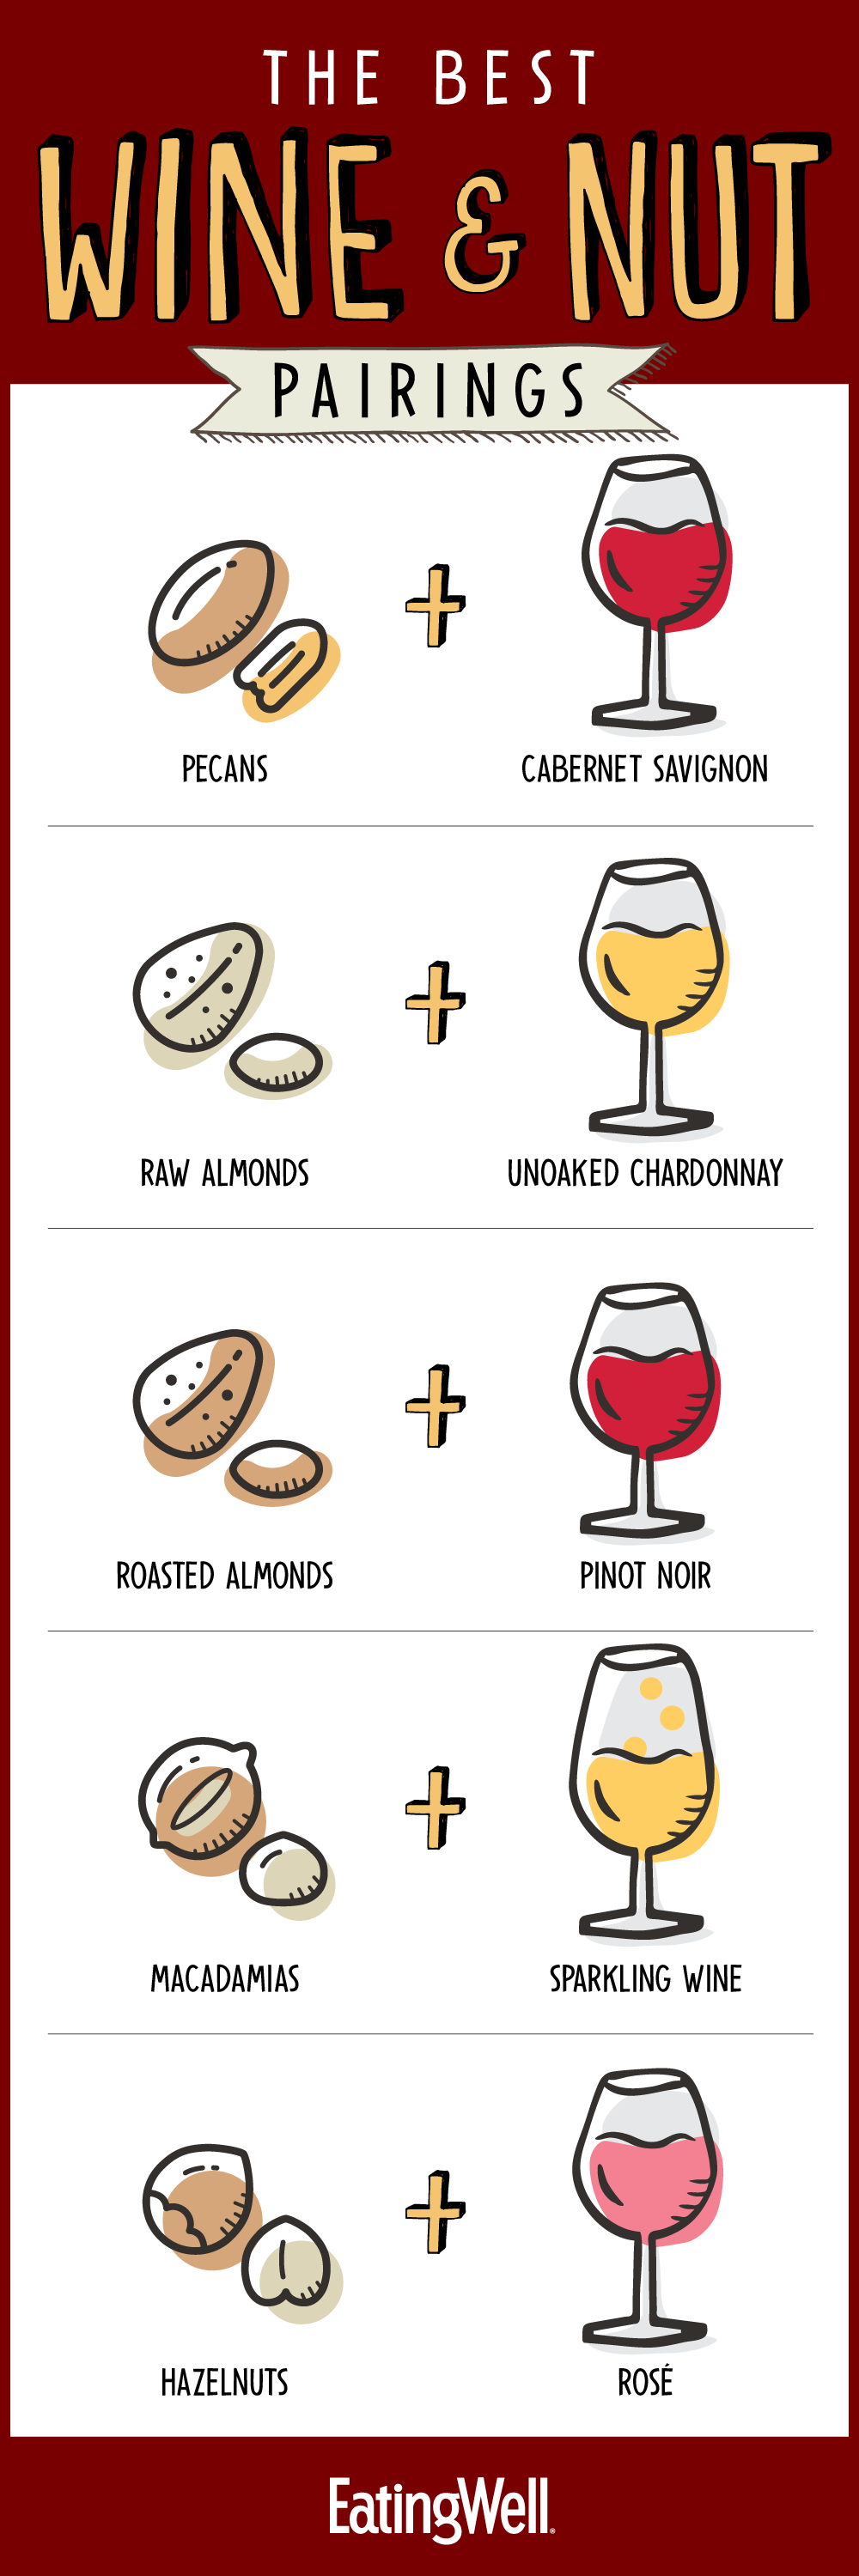 How to Pair Wine and Nuts